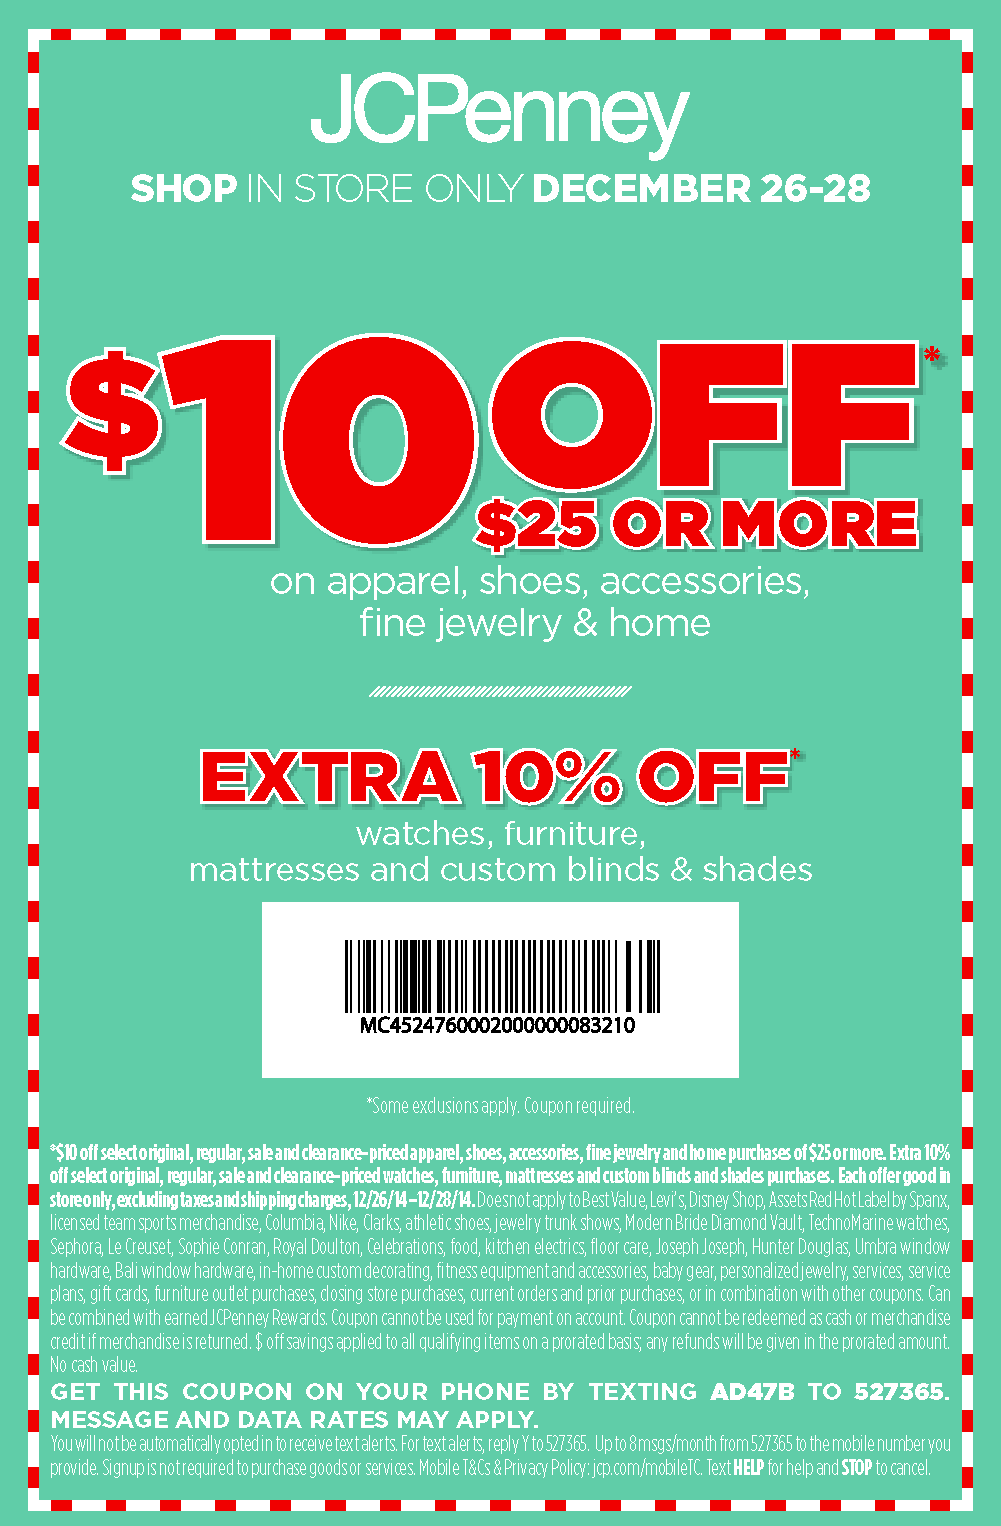 Like A.C. Moore coupons? Try these...